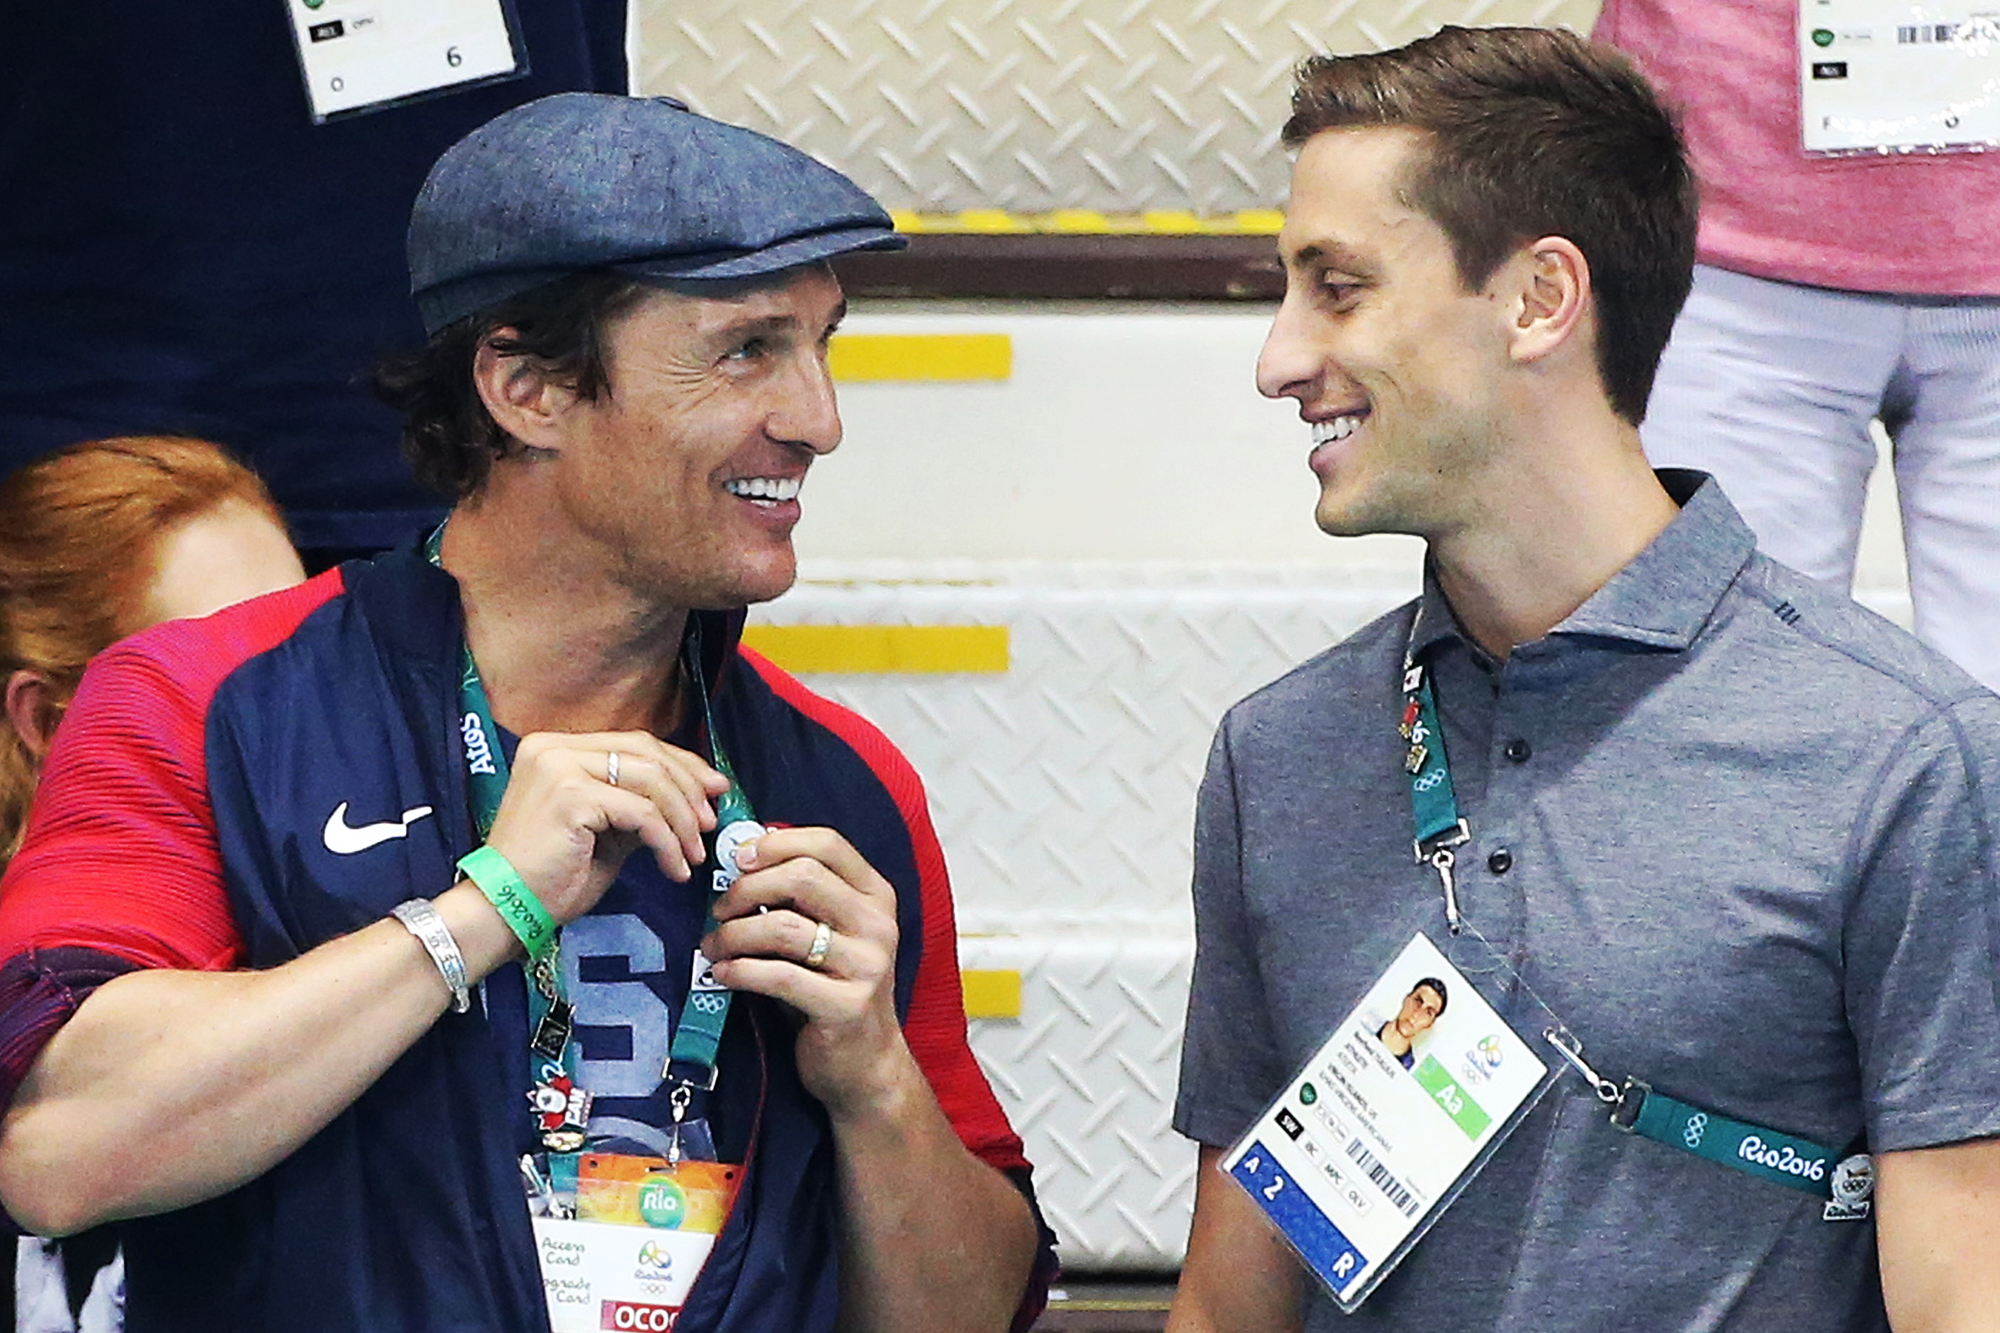 Matthew McConaughey during the swimming finals on day 5 of the Rio 2016 Olympic Games, on Aug.10, 2016 in Rio de Janeiro, Brazil.